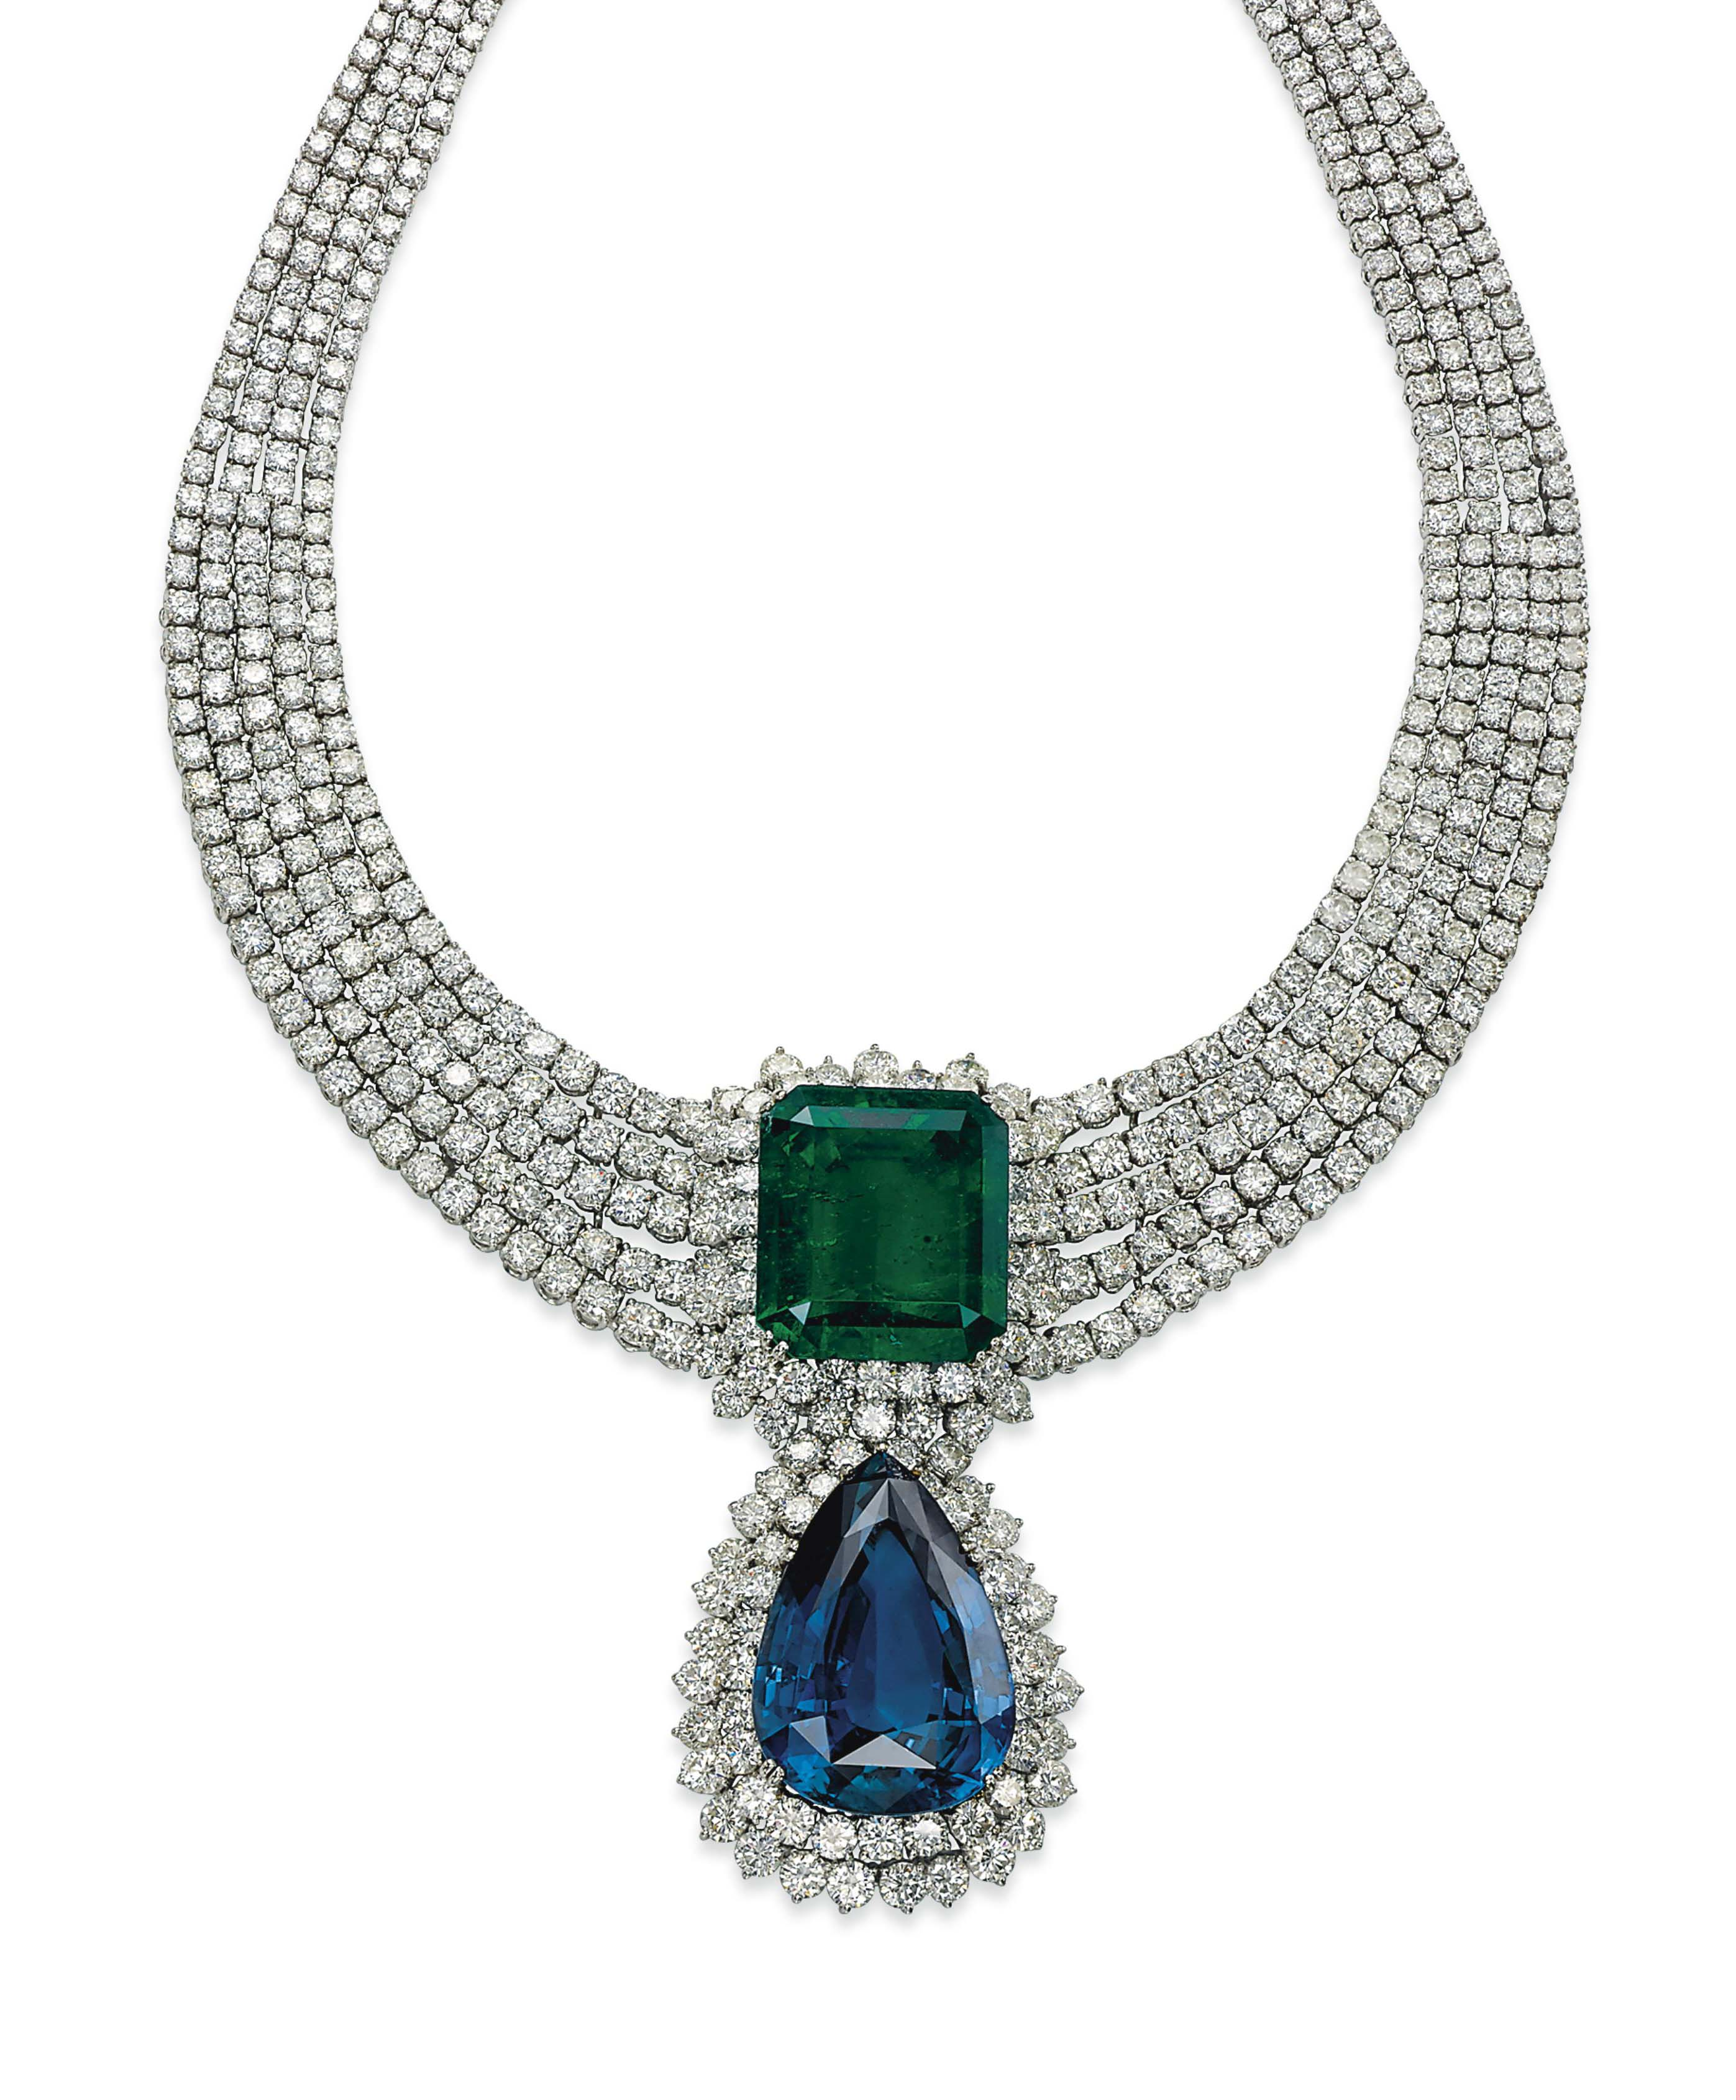 AN EMERALD, SAPPHIRE AND DIAMOND NECKLACE, BY JAHAN